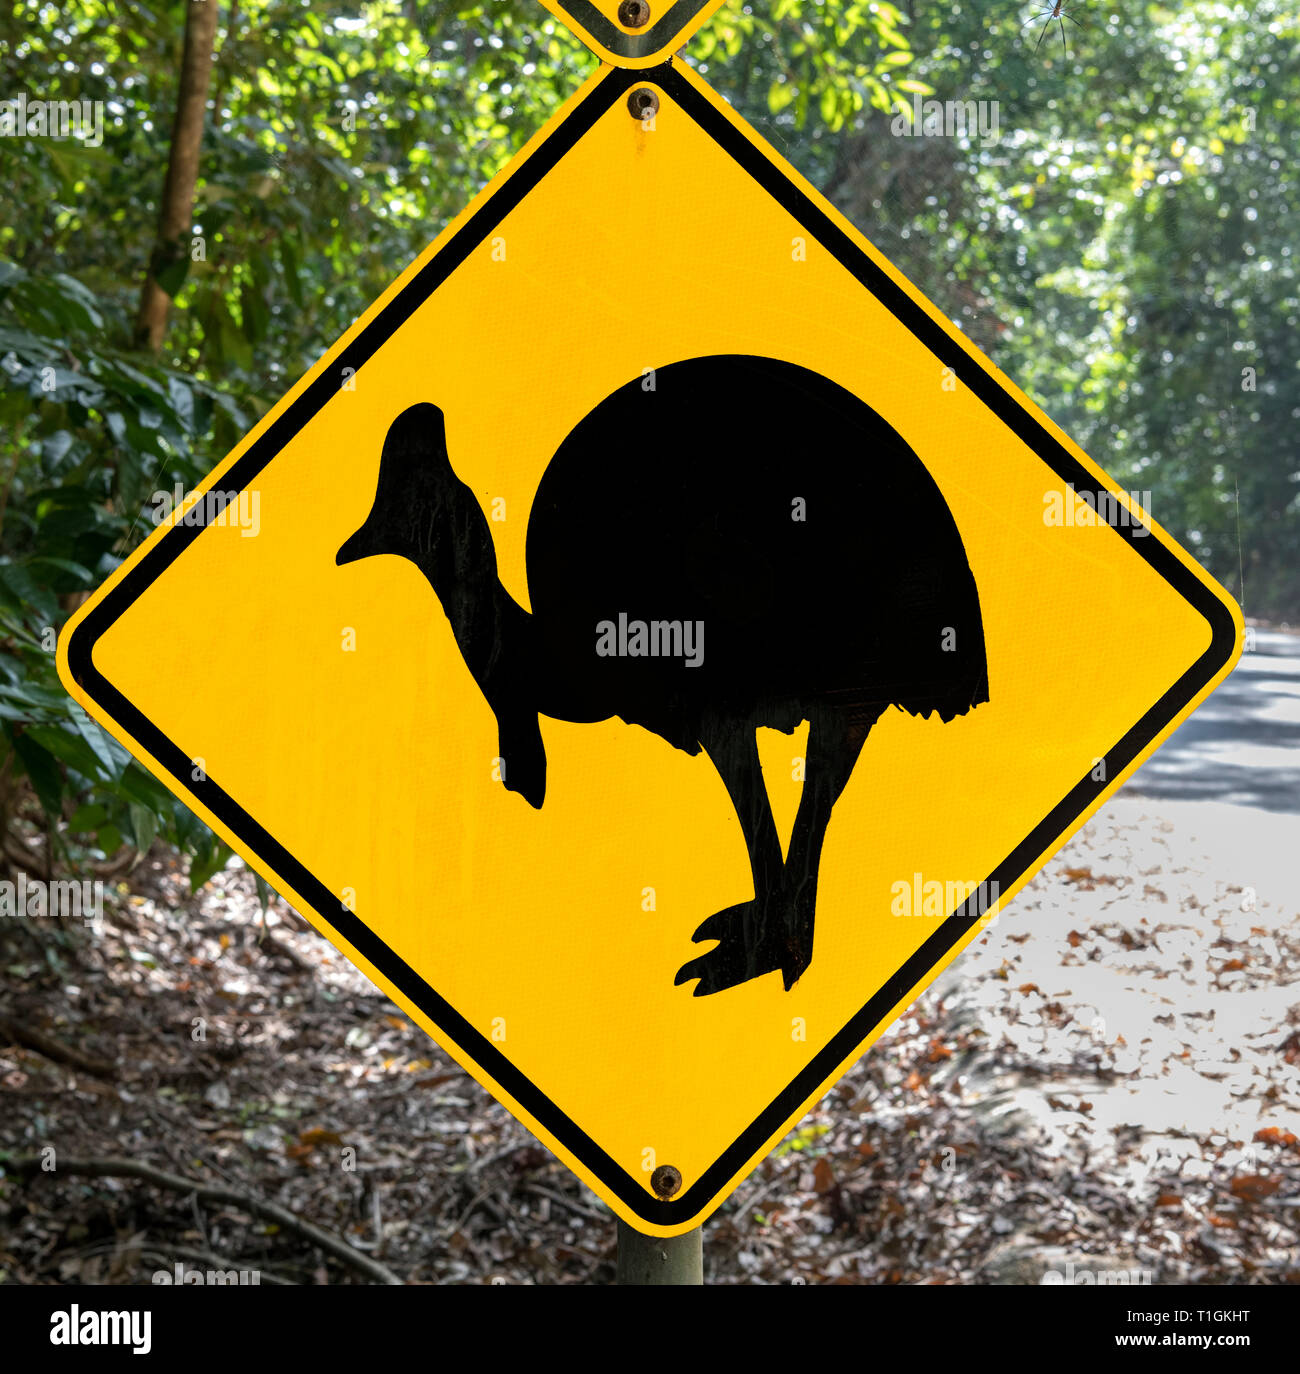 Beware of Cassowary crossing road sign in the Daintree National Park, Queensland, Australia - Stock Image